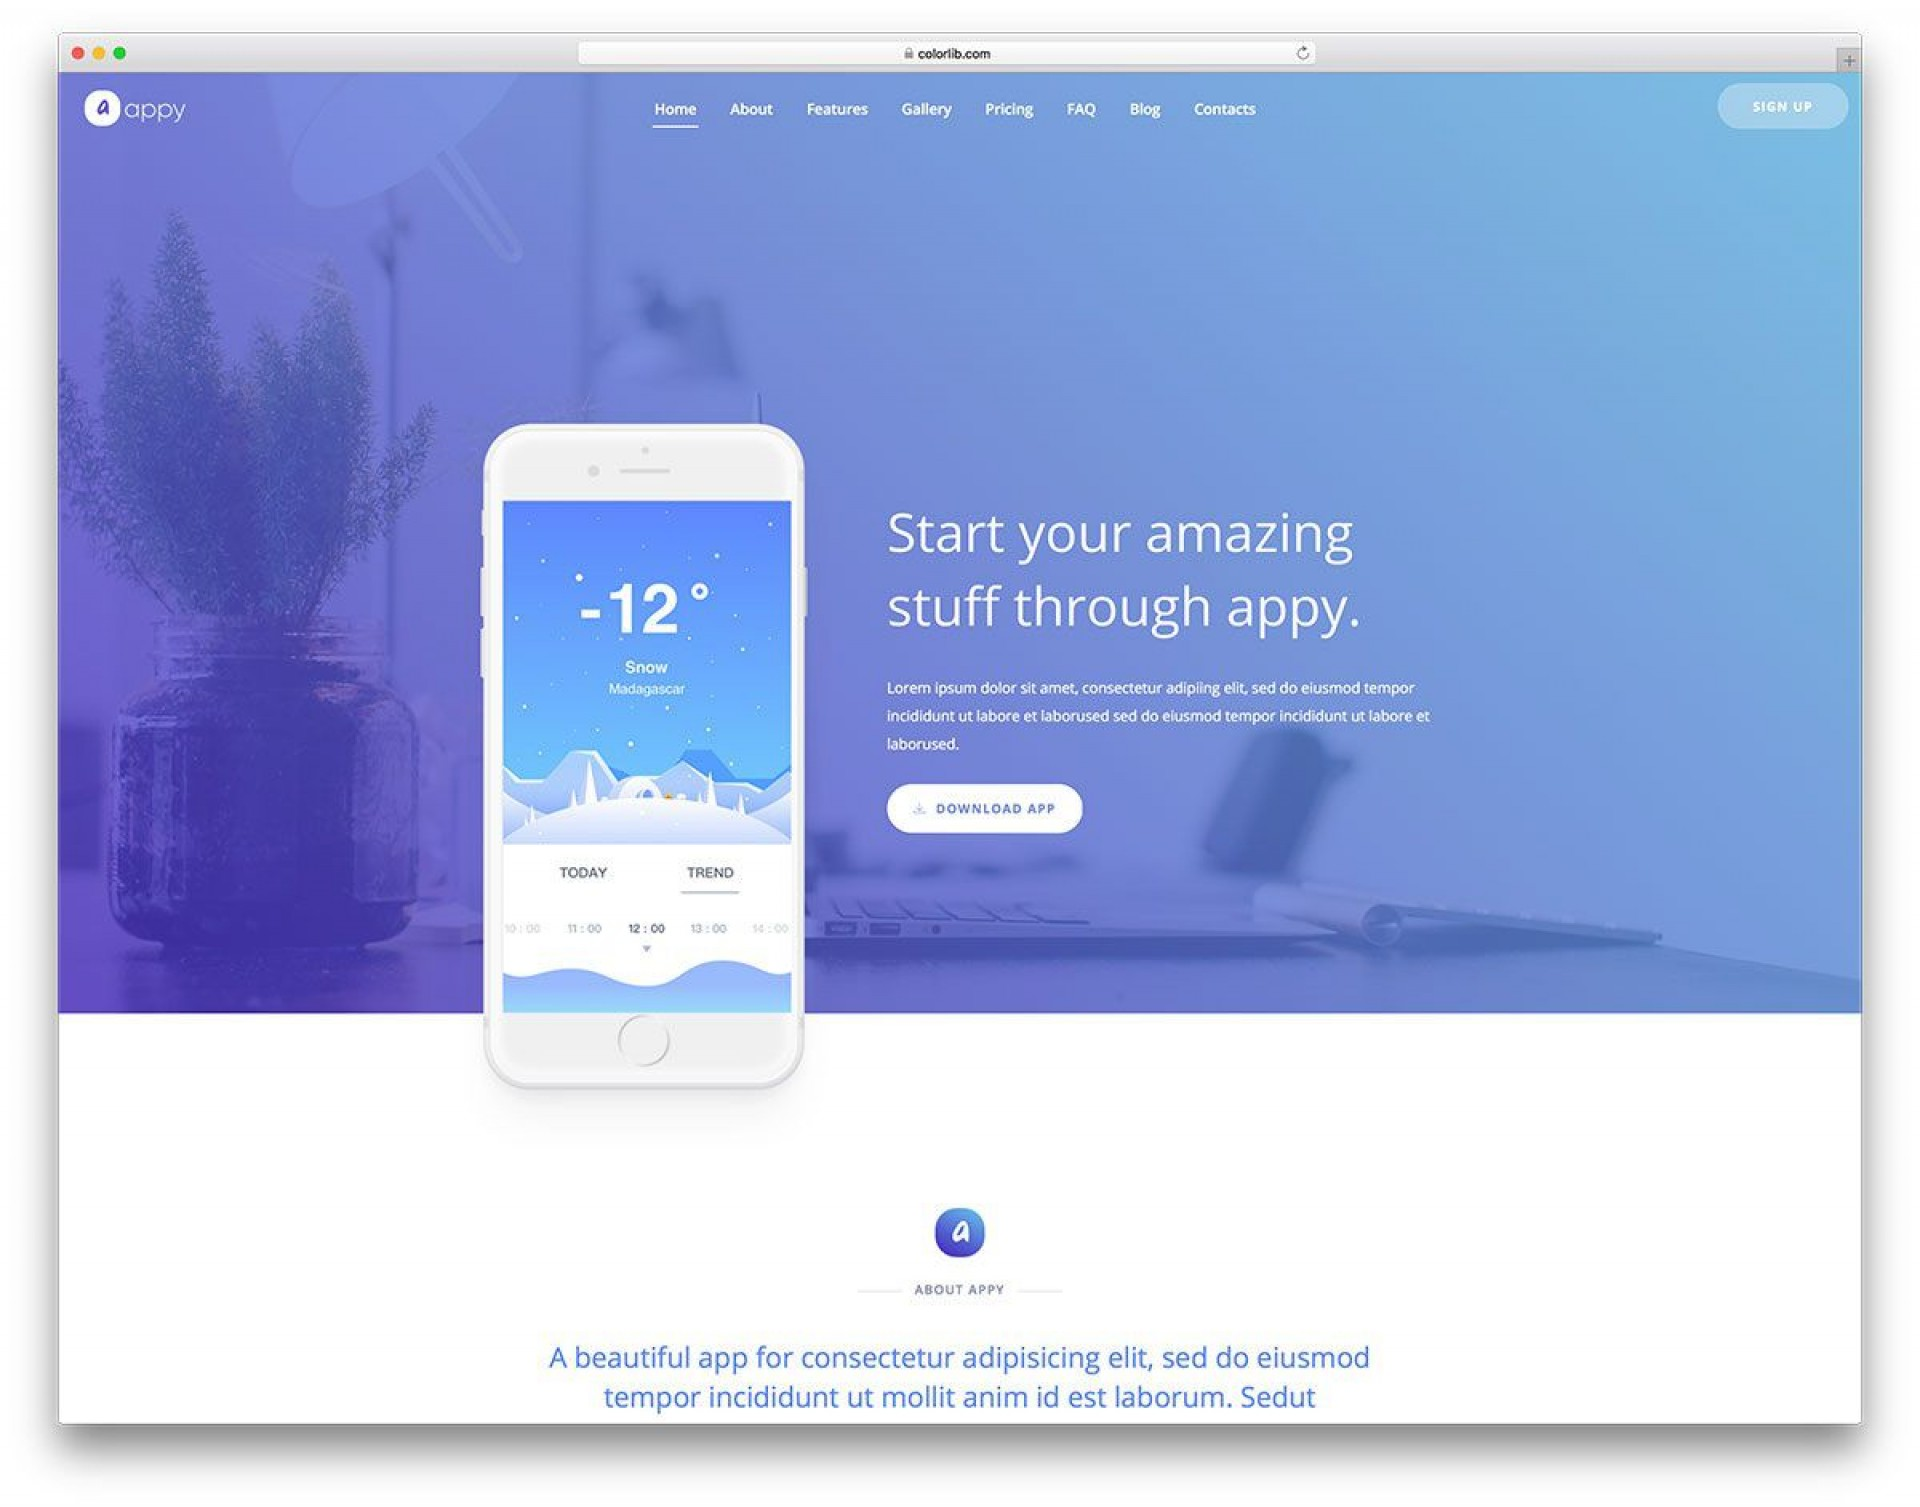 005 Incredible Website Template Html Cs Free Download Design  Registration Page With Javascript Jquery Responsive Student Form1920